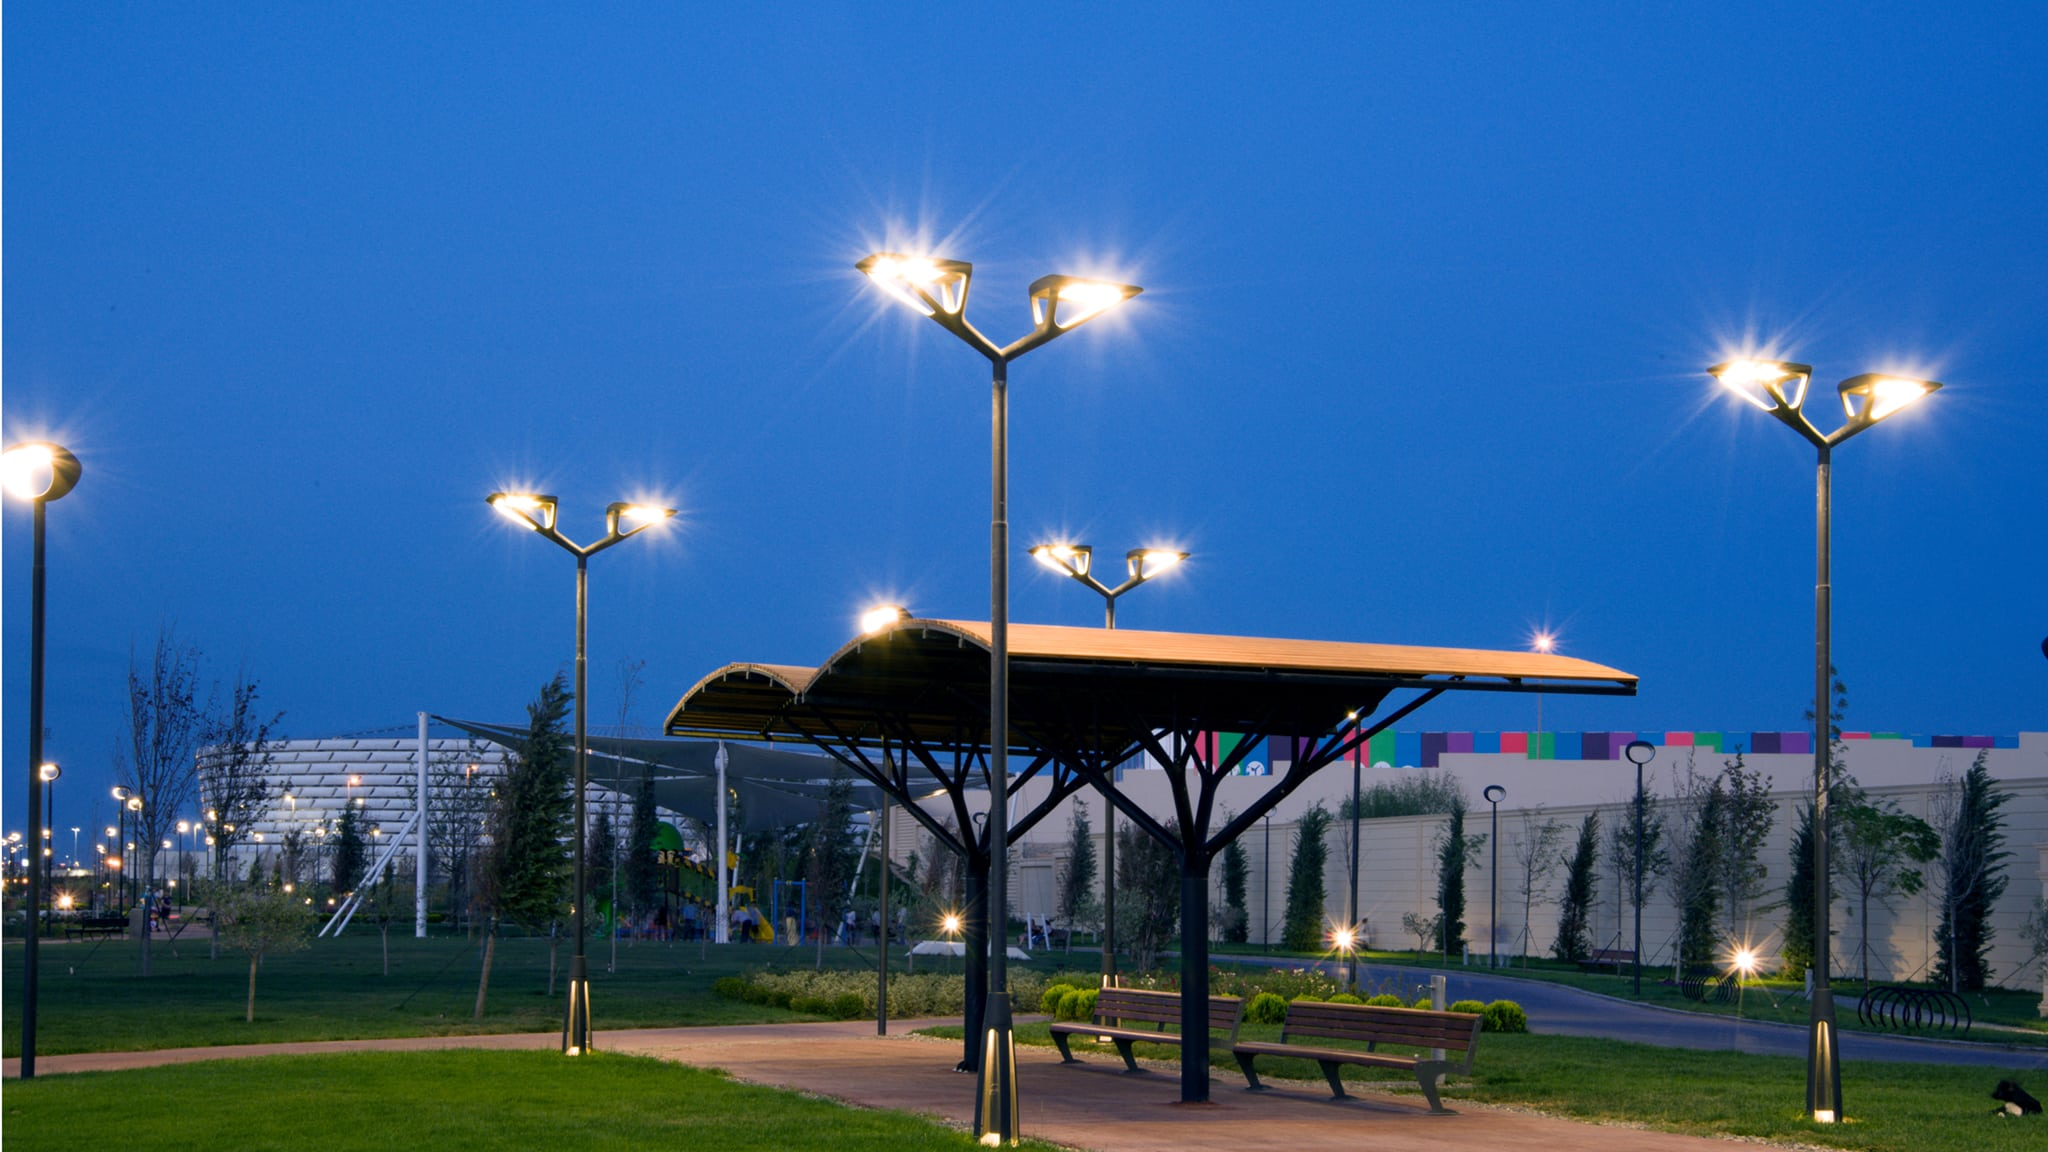 Light columns at night in public park